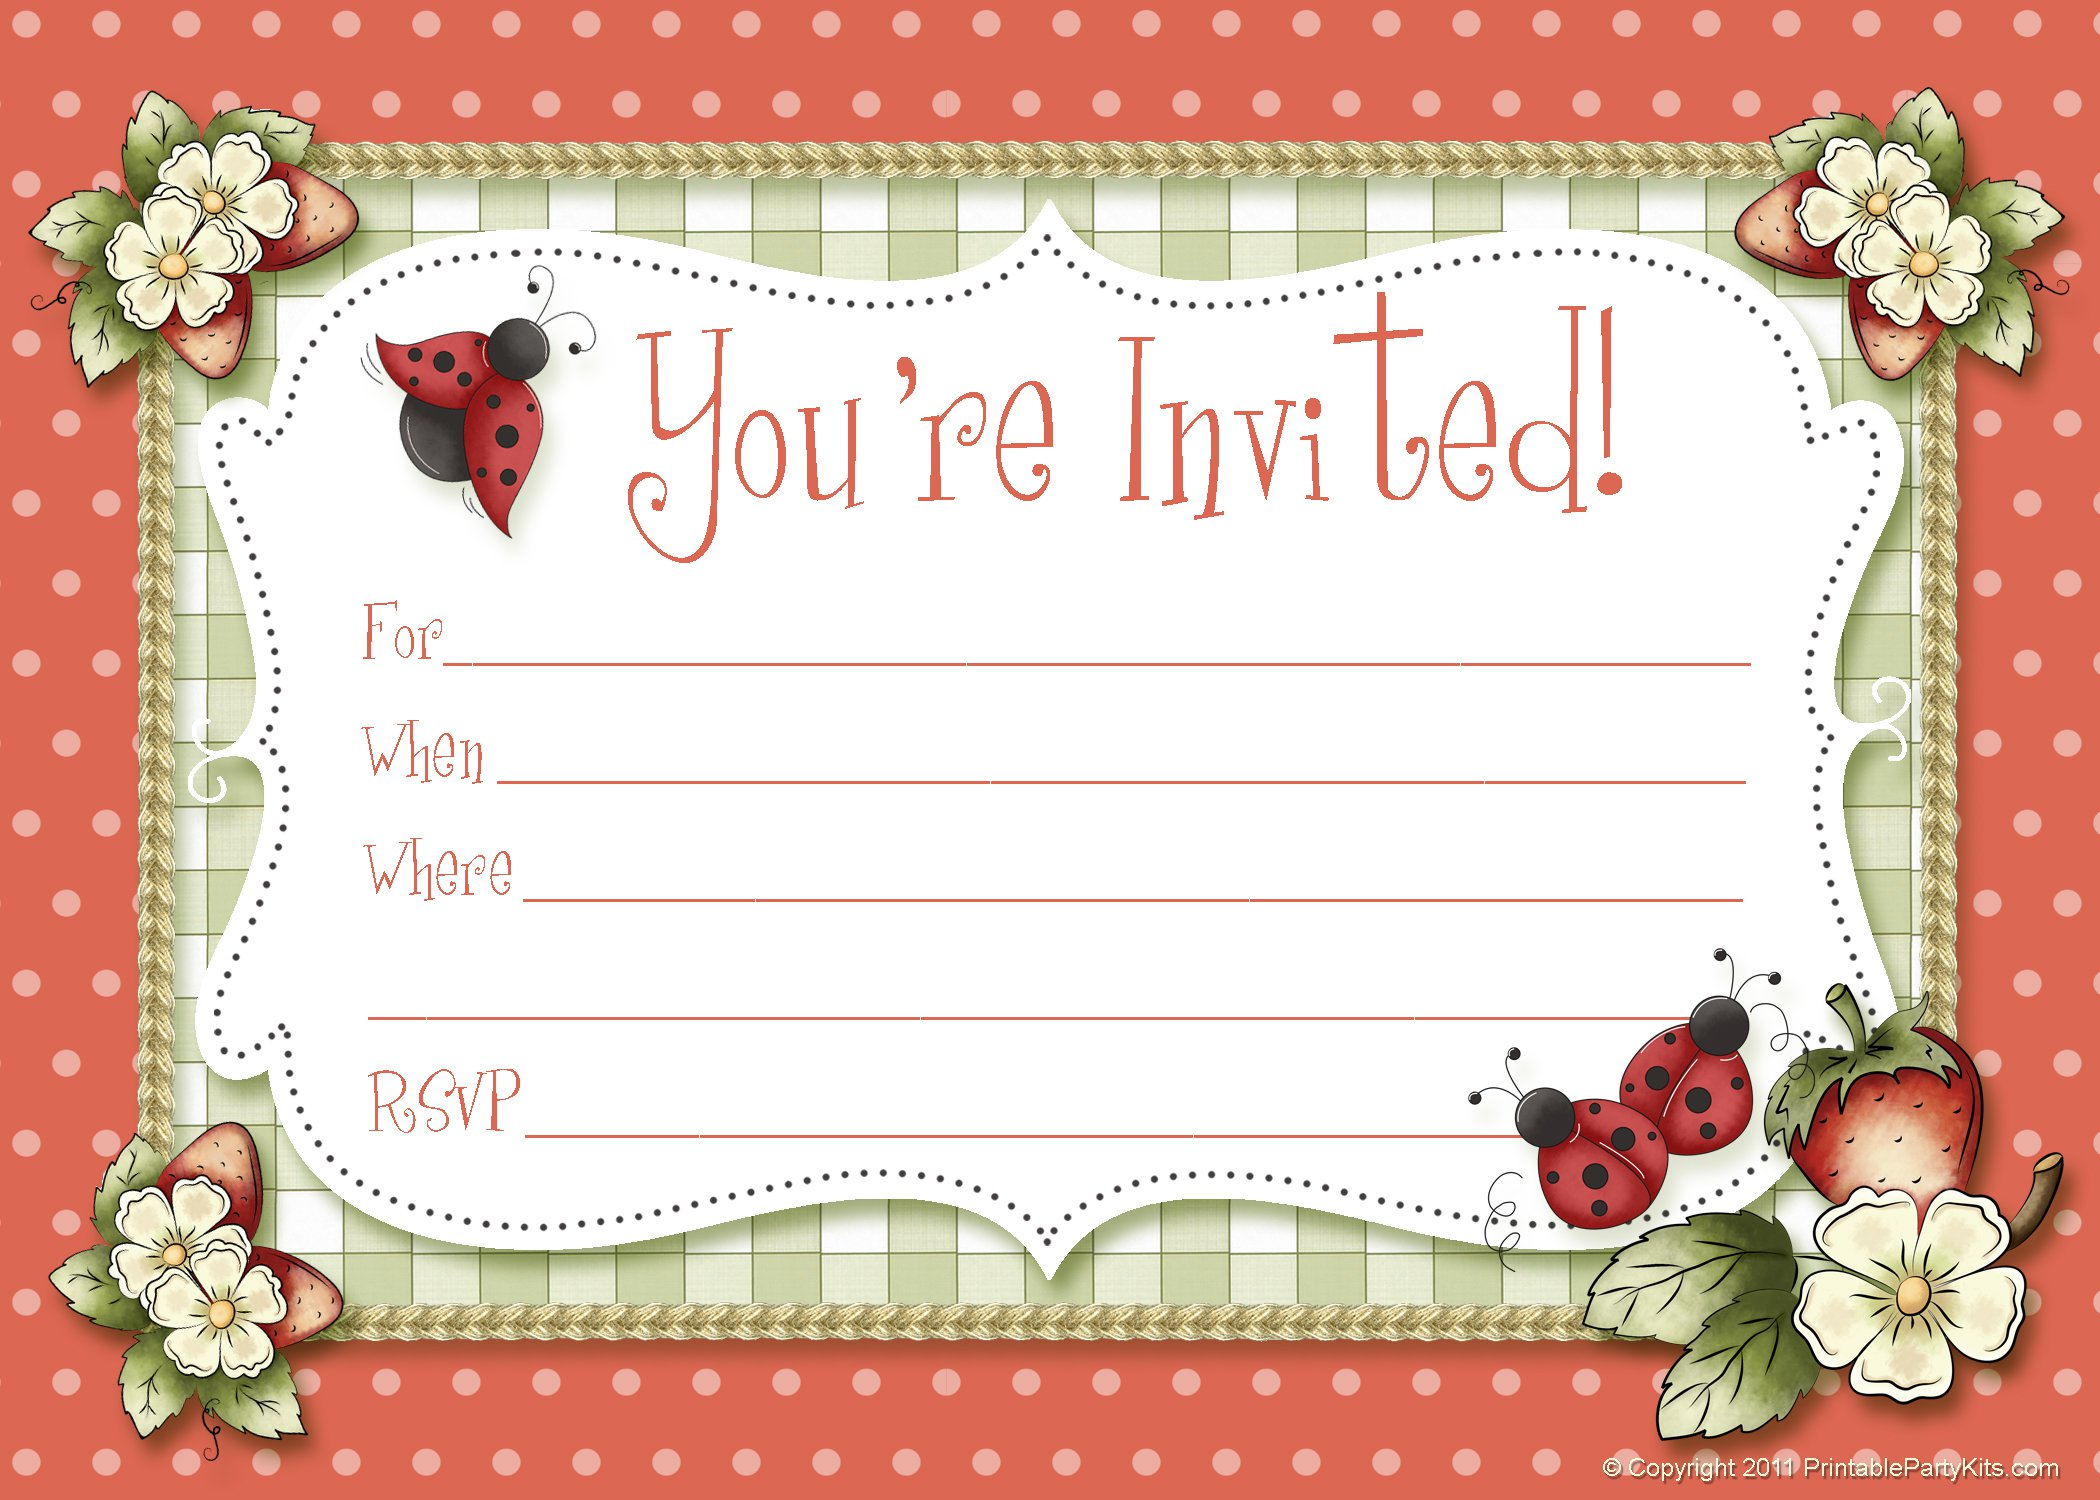 Christmas Party Invitation Blank Template